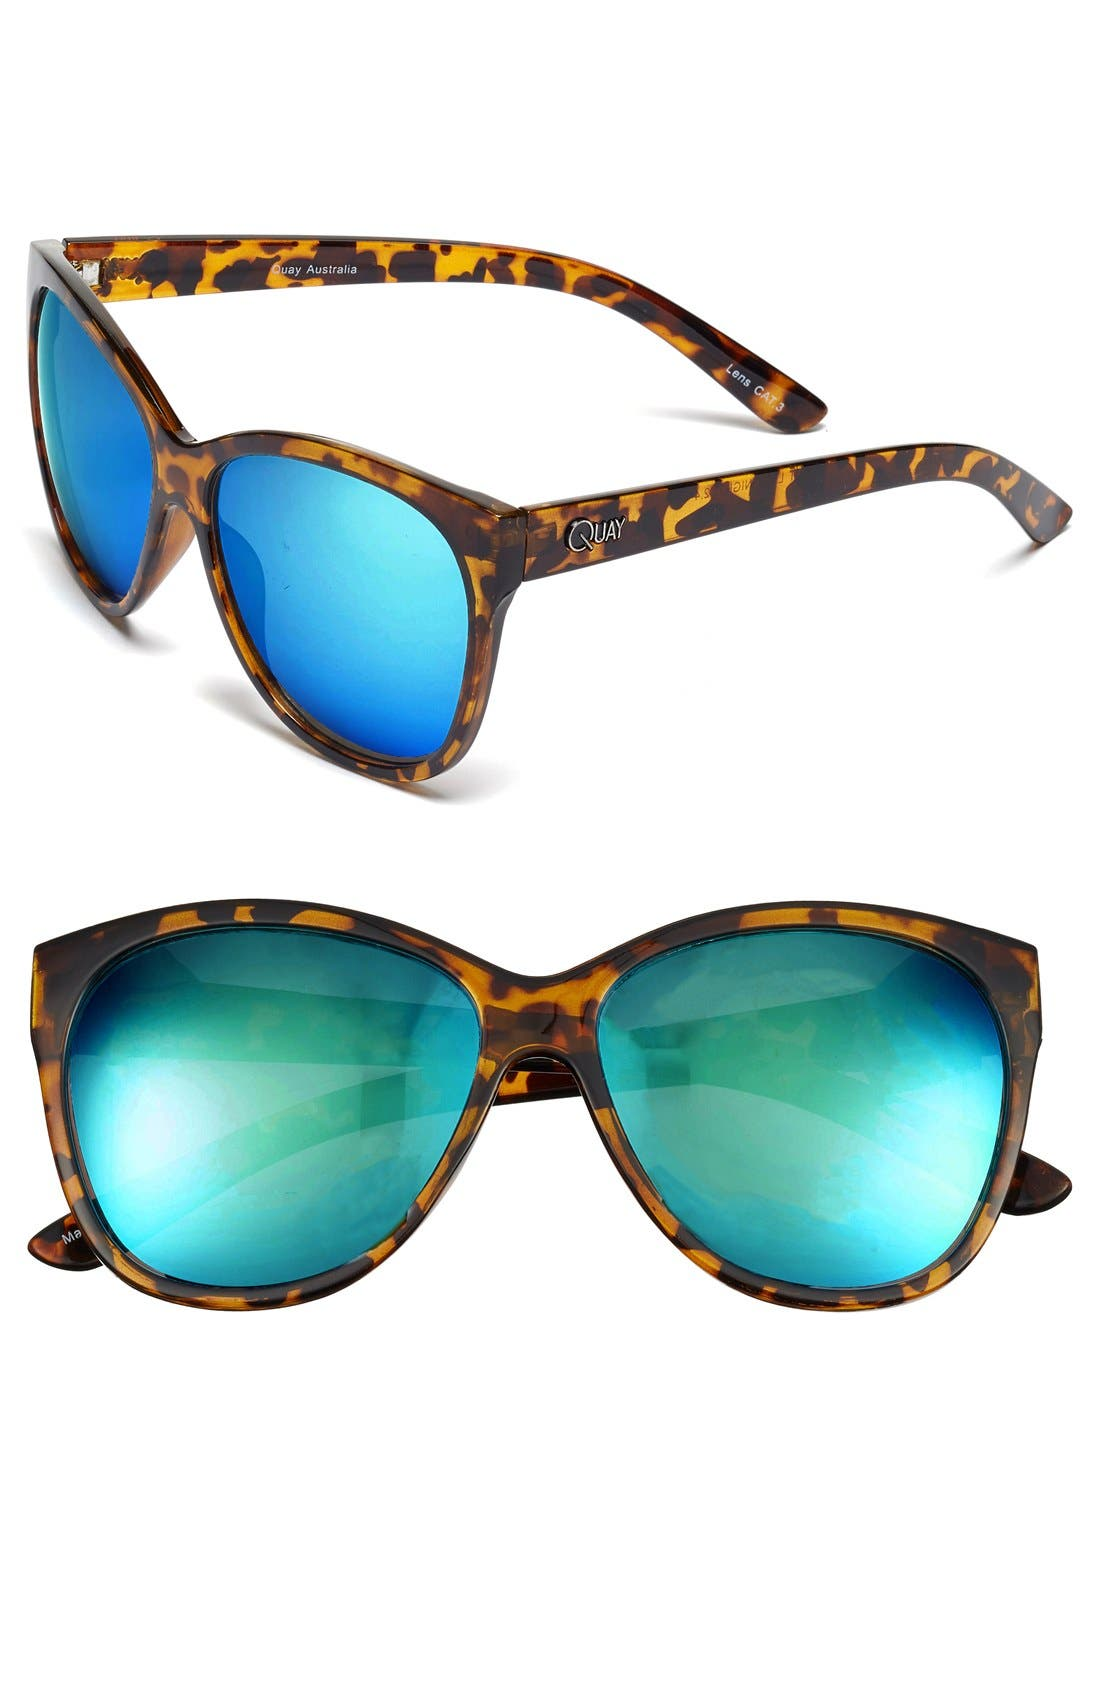 Alternate Image 1 Selected - Quay Australia 'About Last Night' 59mm Retro Sunglasses